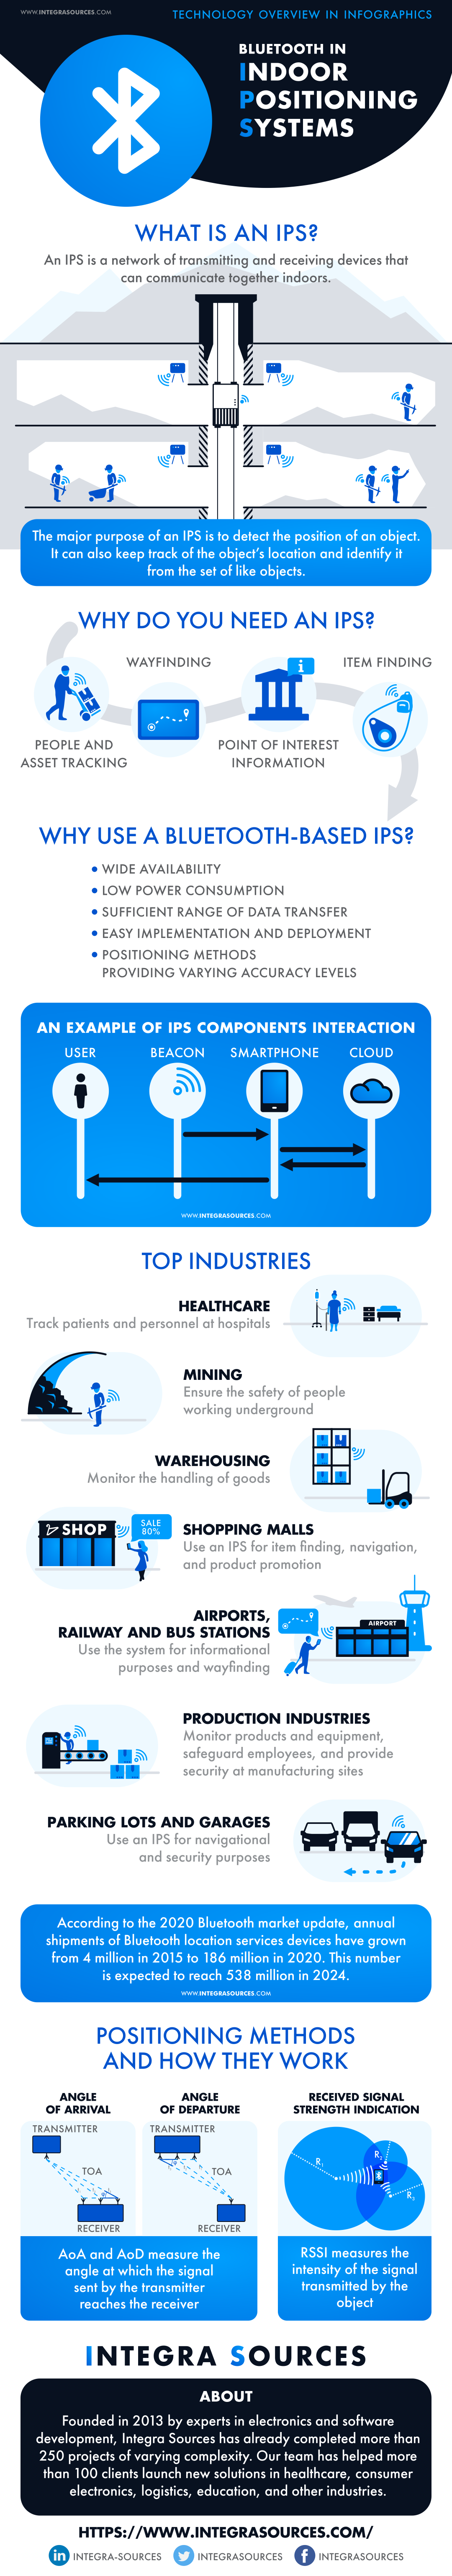 Bluetooth in Indoor Positioning Systems: Technology Overview